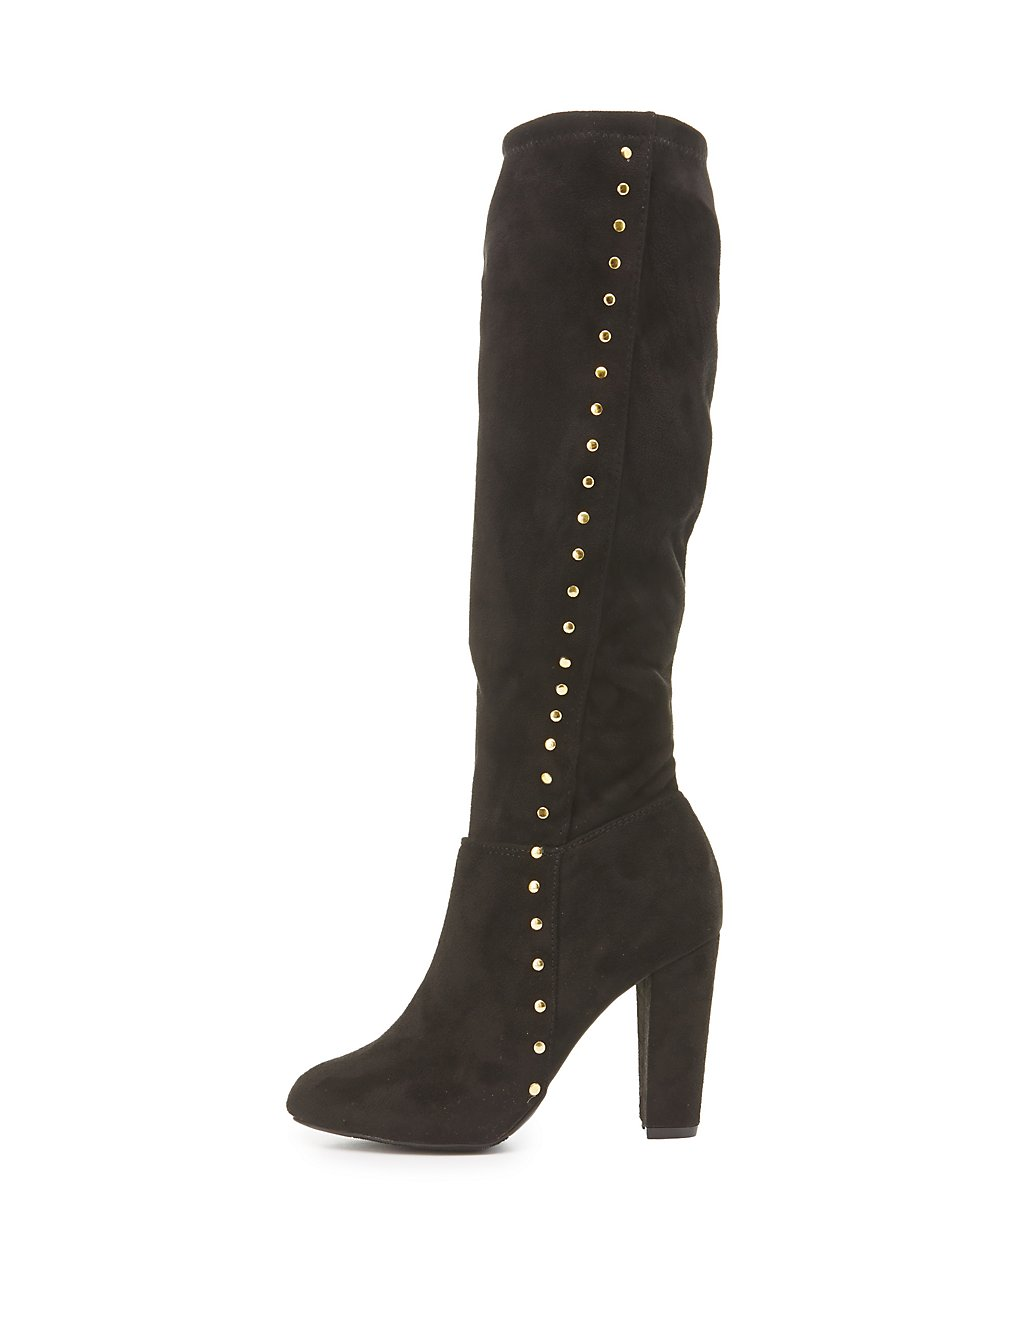 Studded Knee-High Boots | Charlotte Russe